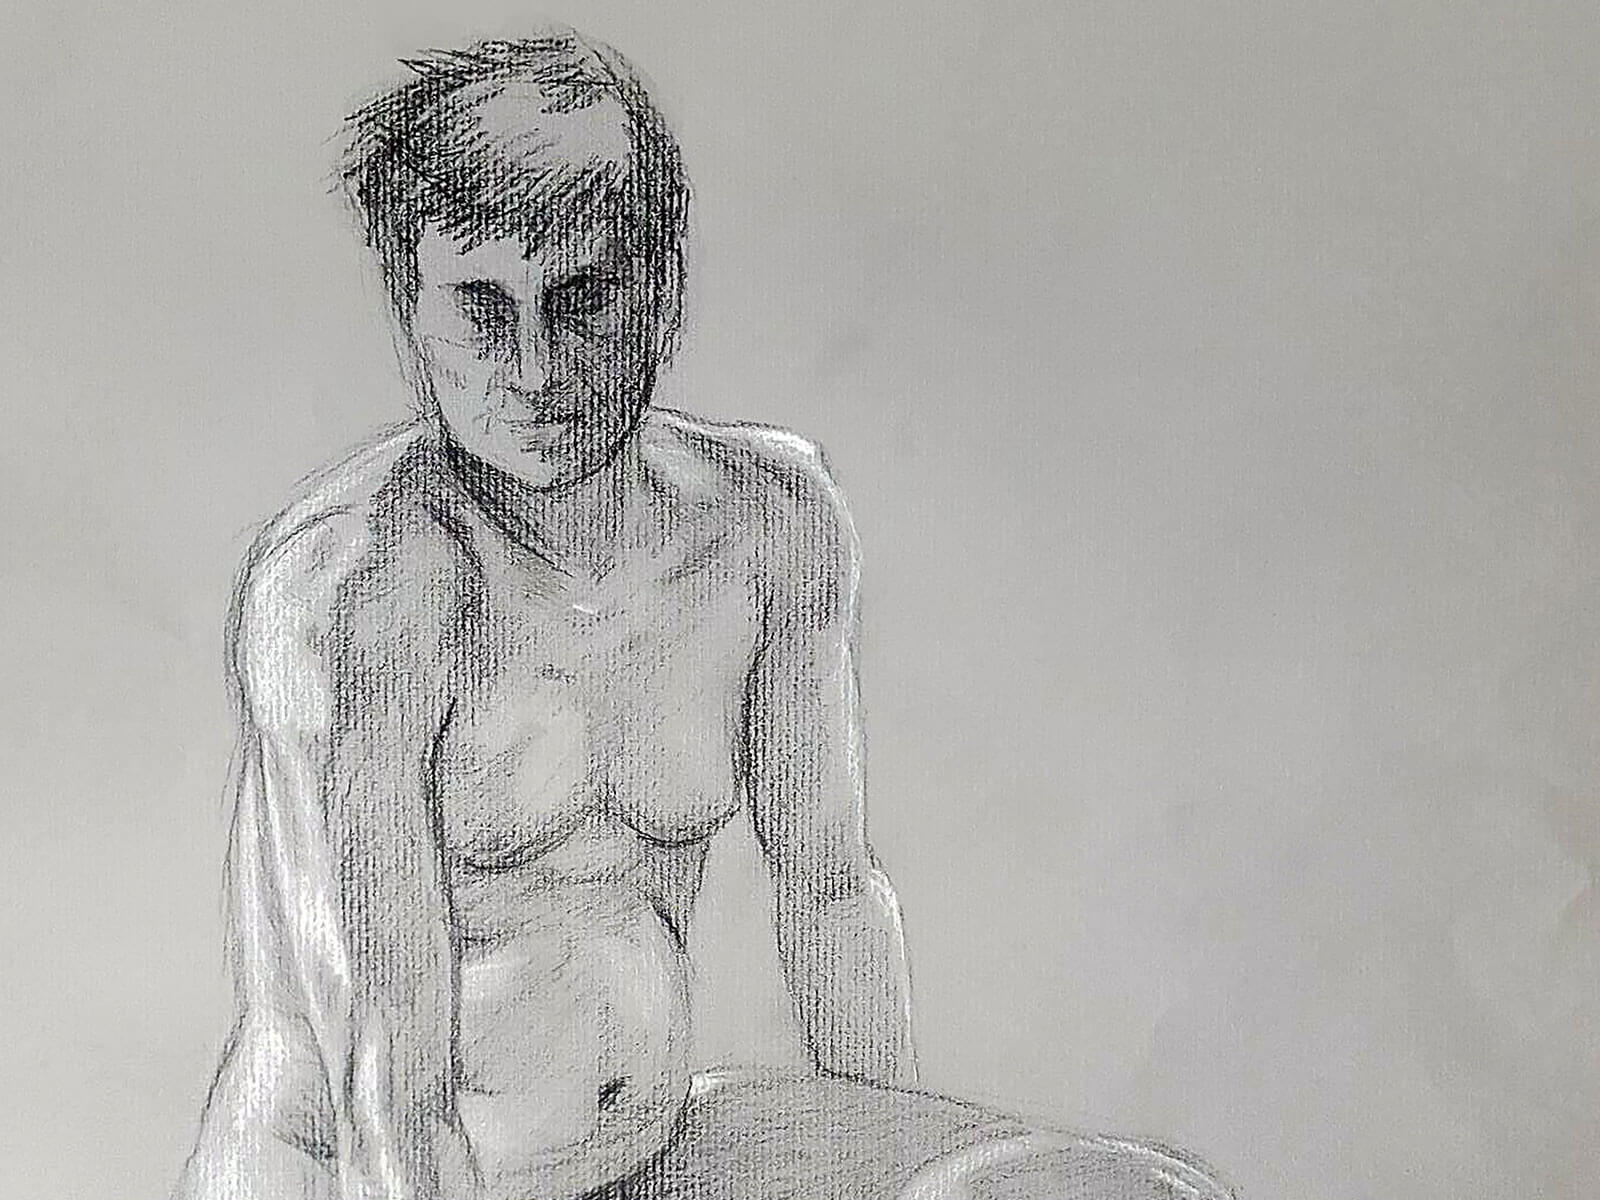 A black-and-white sketch of a naked man posed in a seated position glancing downward.